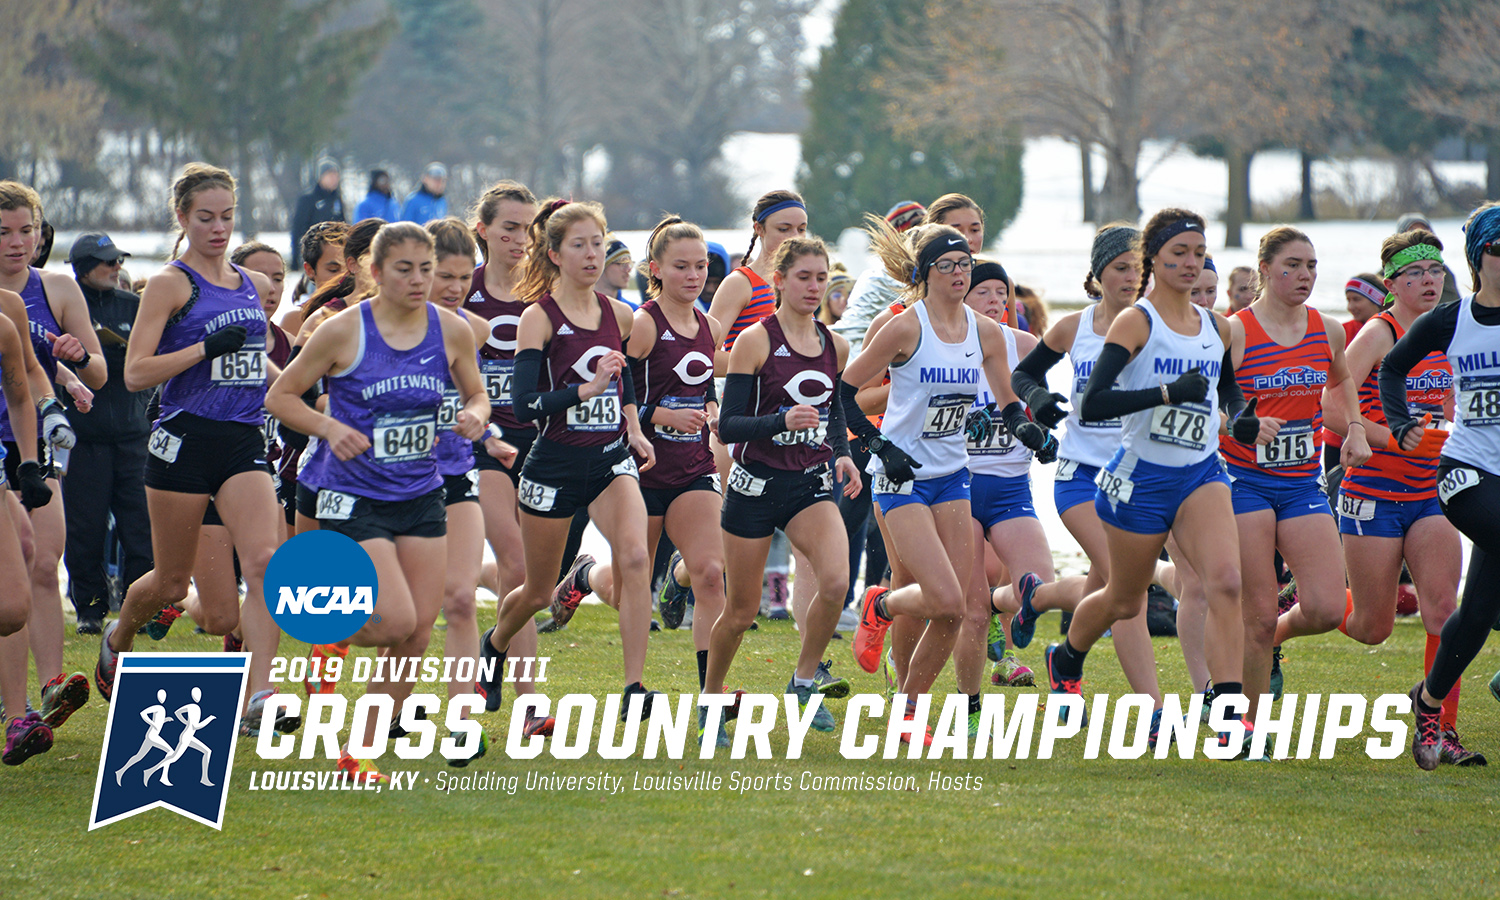 Both UChicago Cross Country Programs Qualify for 2019 NCAA Championships